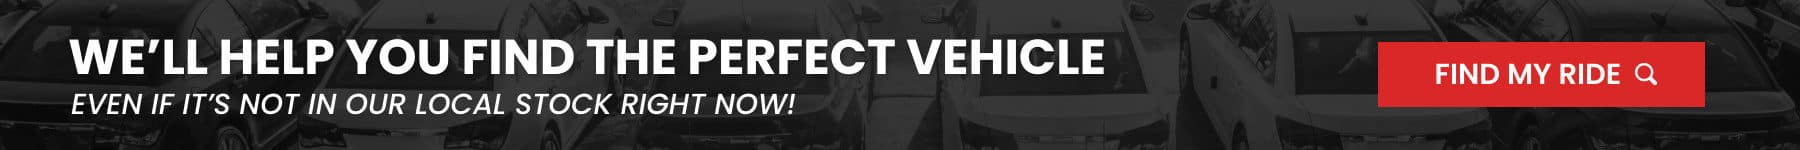 Help You Find The Perfect Vehicle